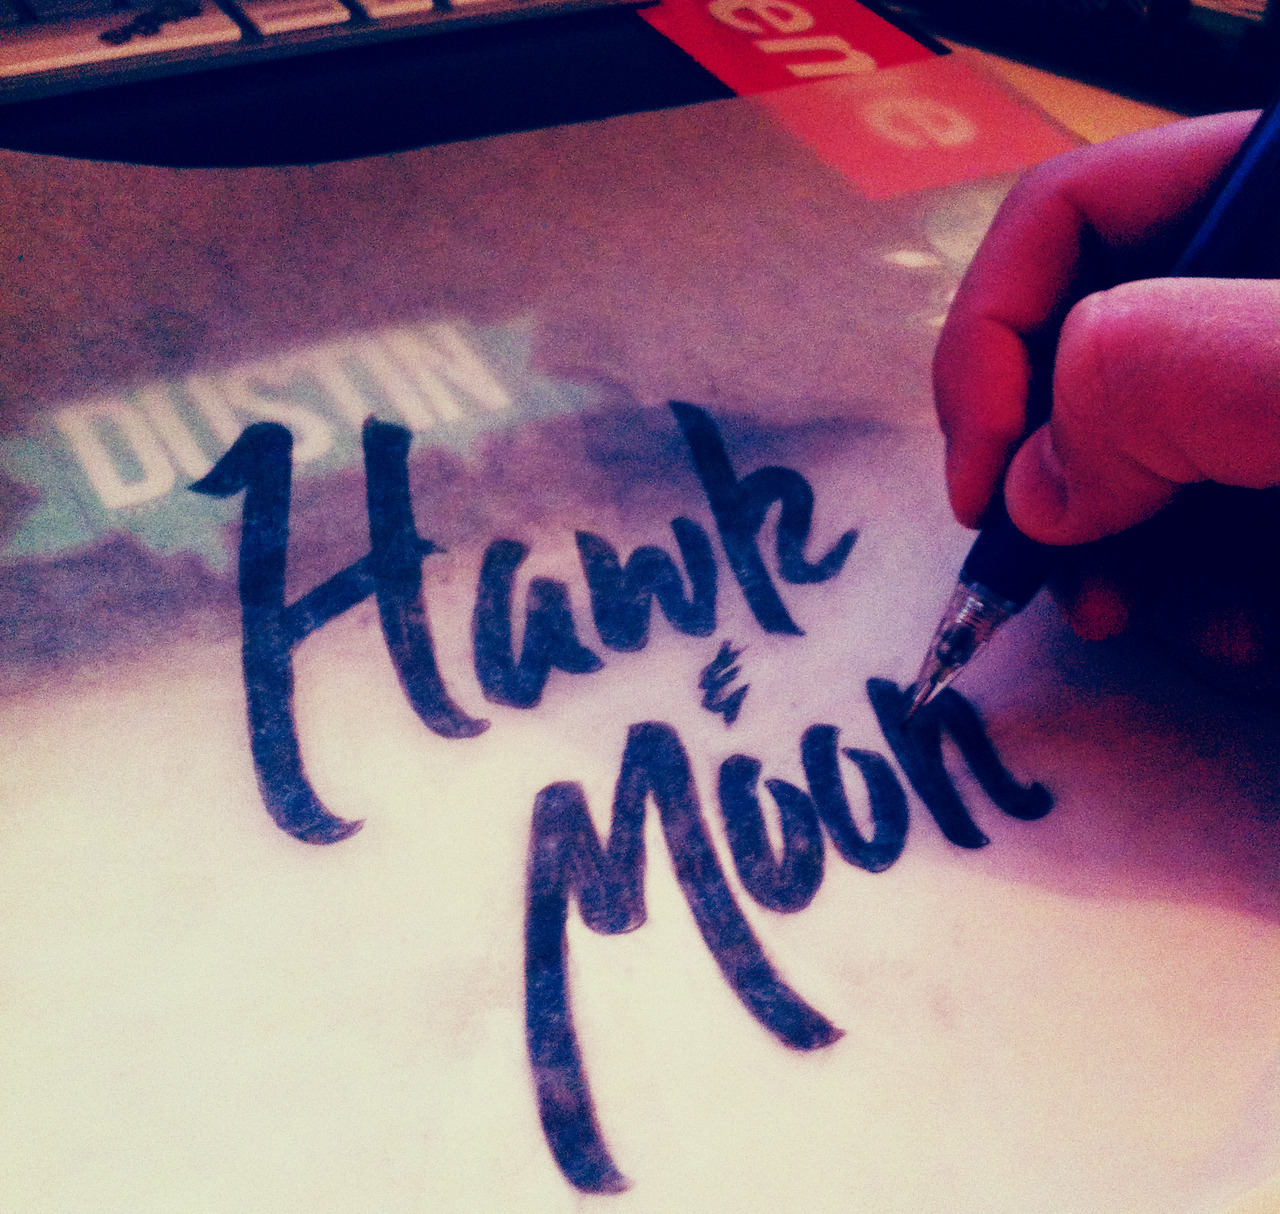 Working up some new #handlettering #typography #graphicdesign #logo